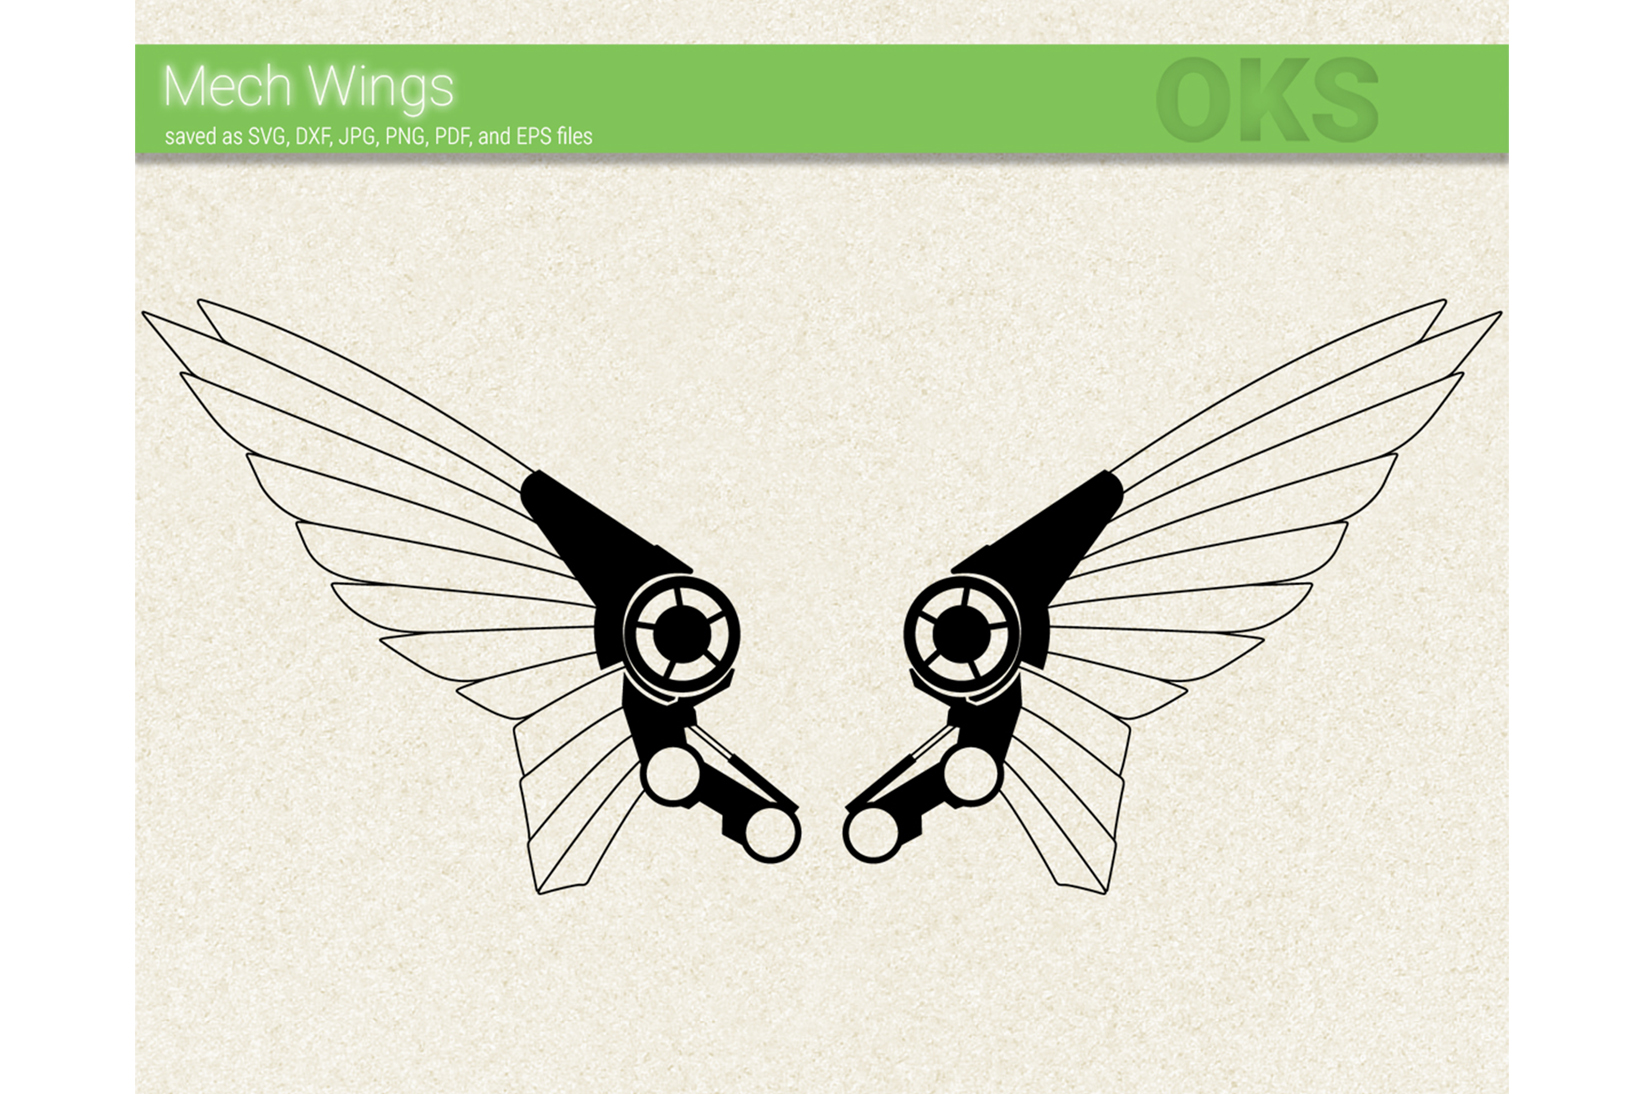 Download Free Robot Wing Graphic By Crafteroks Creative Fabrica for Cricut Explore, Silhouette and other cutting machines.